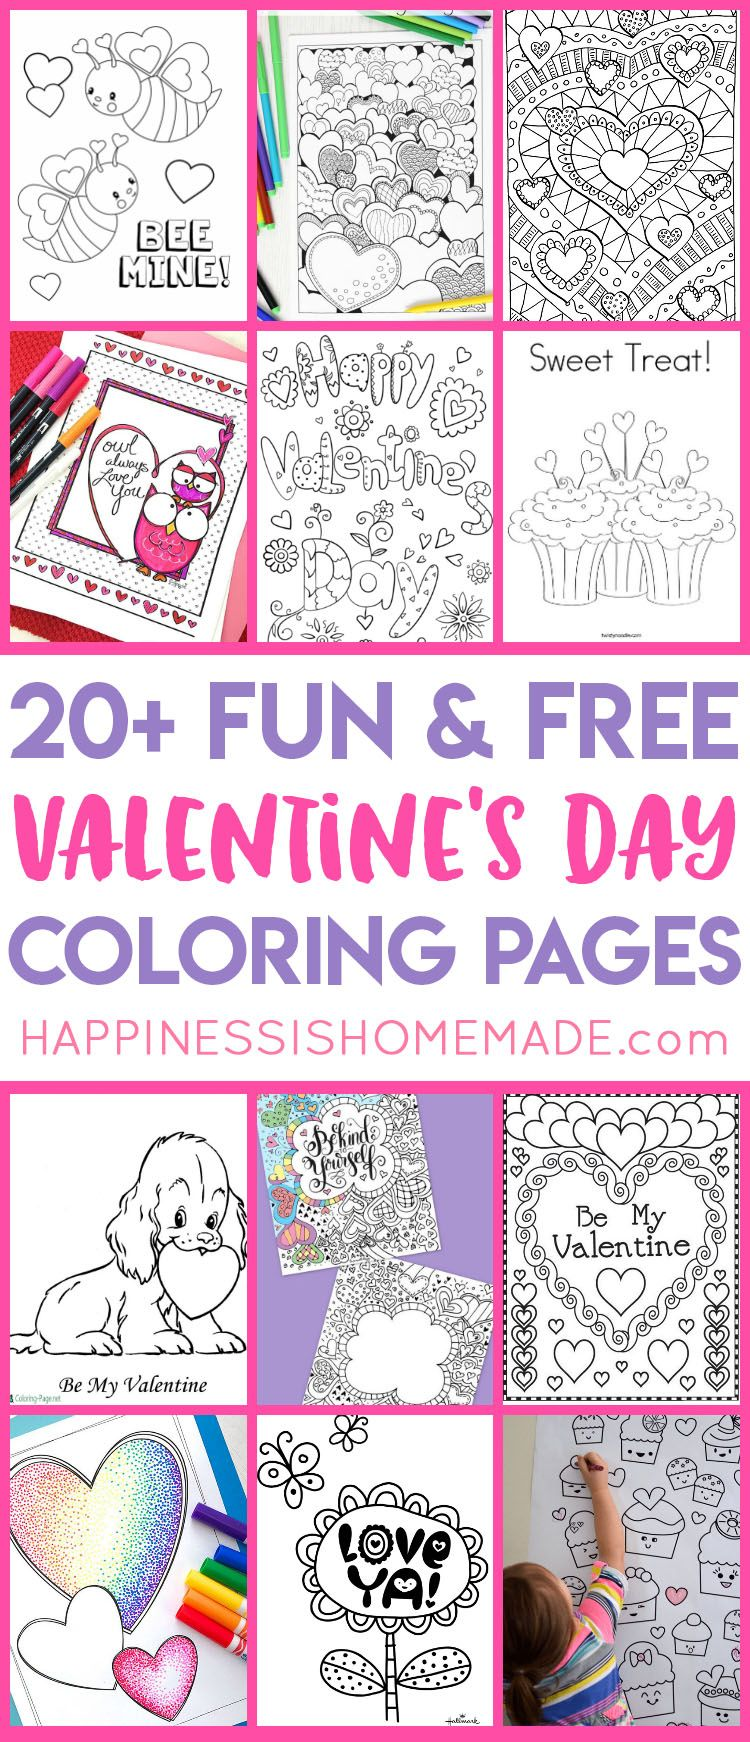 18+ Fun Valentine\'s Crafts & Activities for Toddlers | Free ...